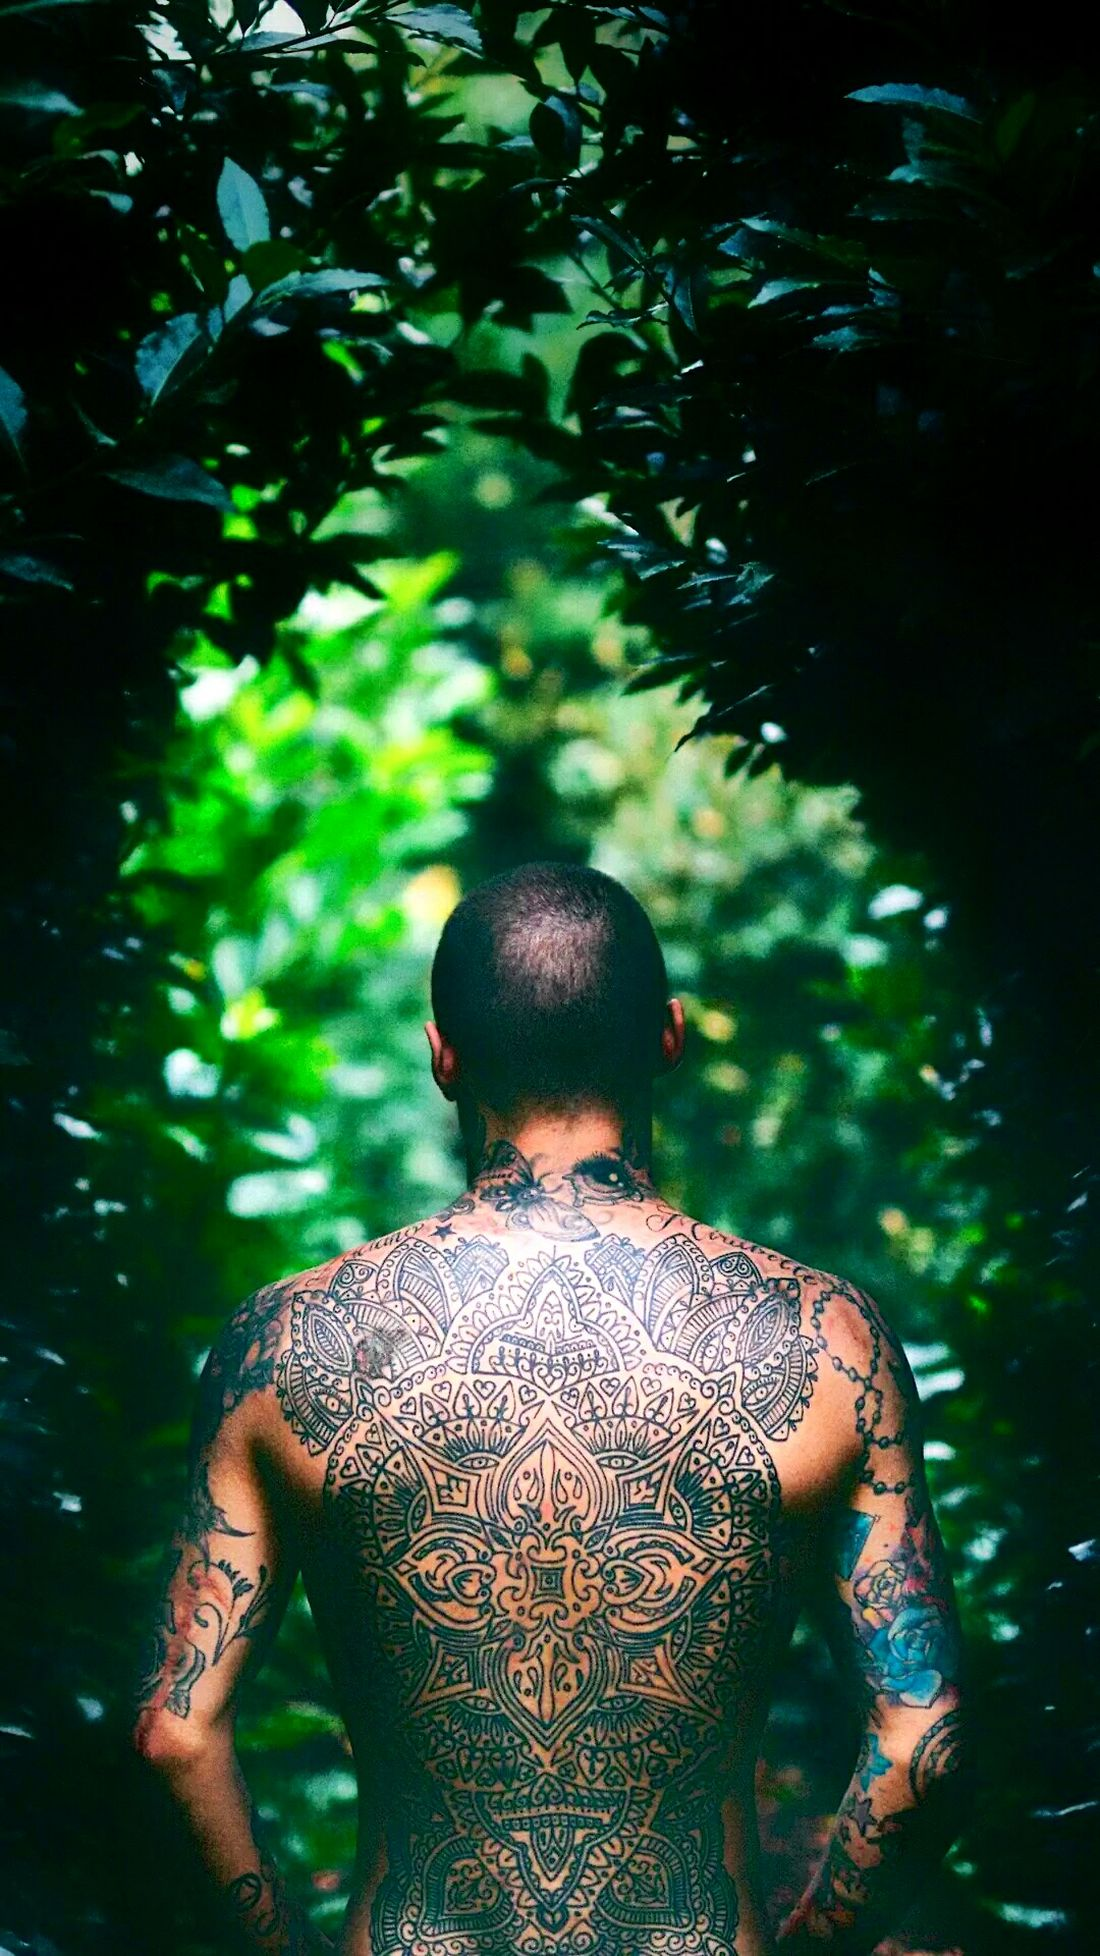 The Portraitist - 2017 EyeEm Awards Rear View Shirtless Muscular Build TattosLife Tattooslove The Great Outdoors - 2017 EyeEm Awards The Photojournalist - 20I7 EyeEm Awards Close-up Capture The Moment EyeEmNewHere Portrait The Week On Eyem Art Is Everywhere Minimalist Photography